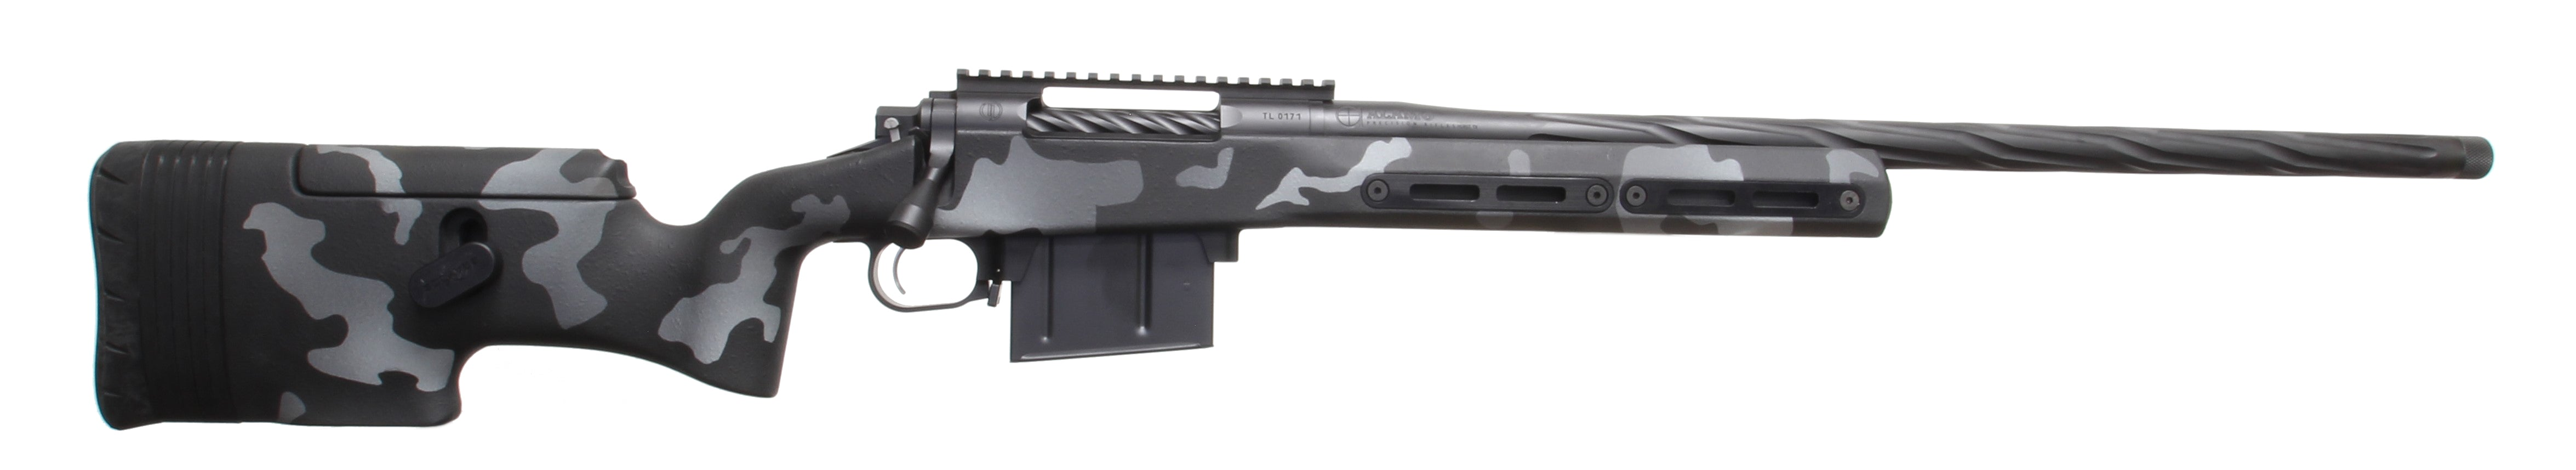 APR Adjustable Ranger 300 Win Mag